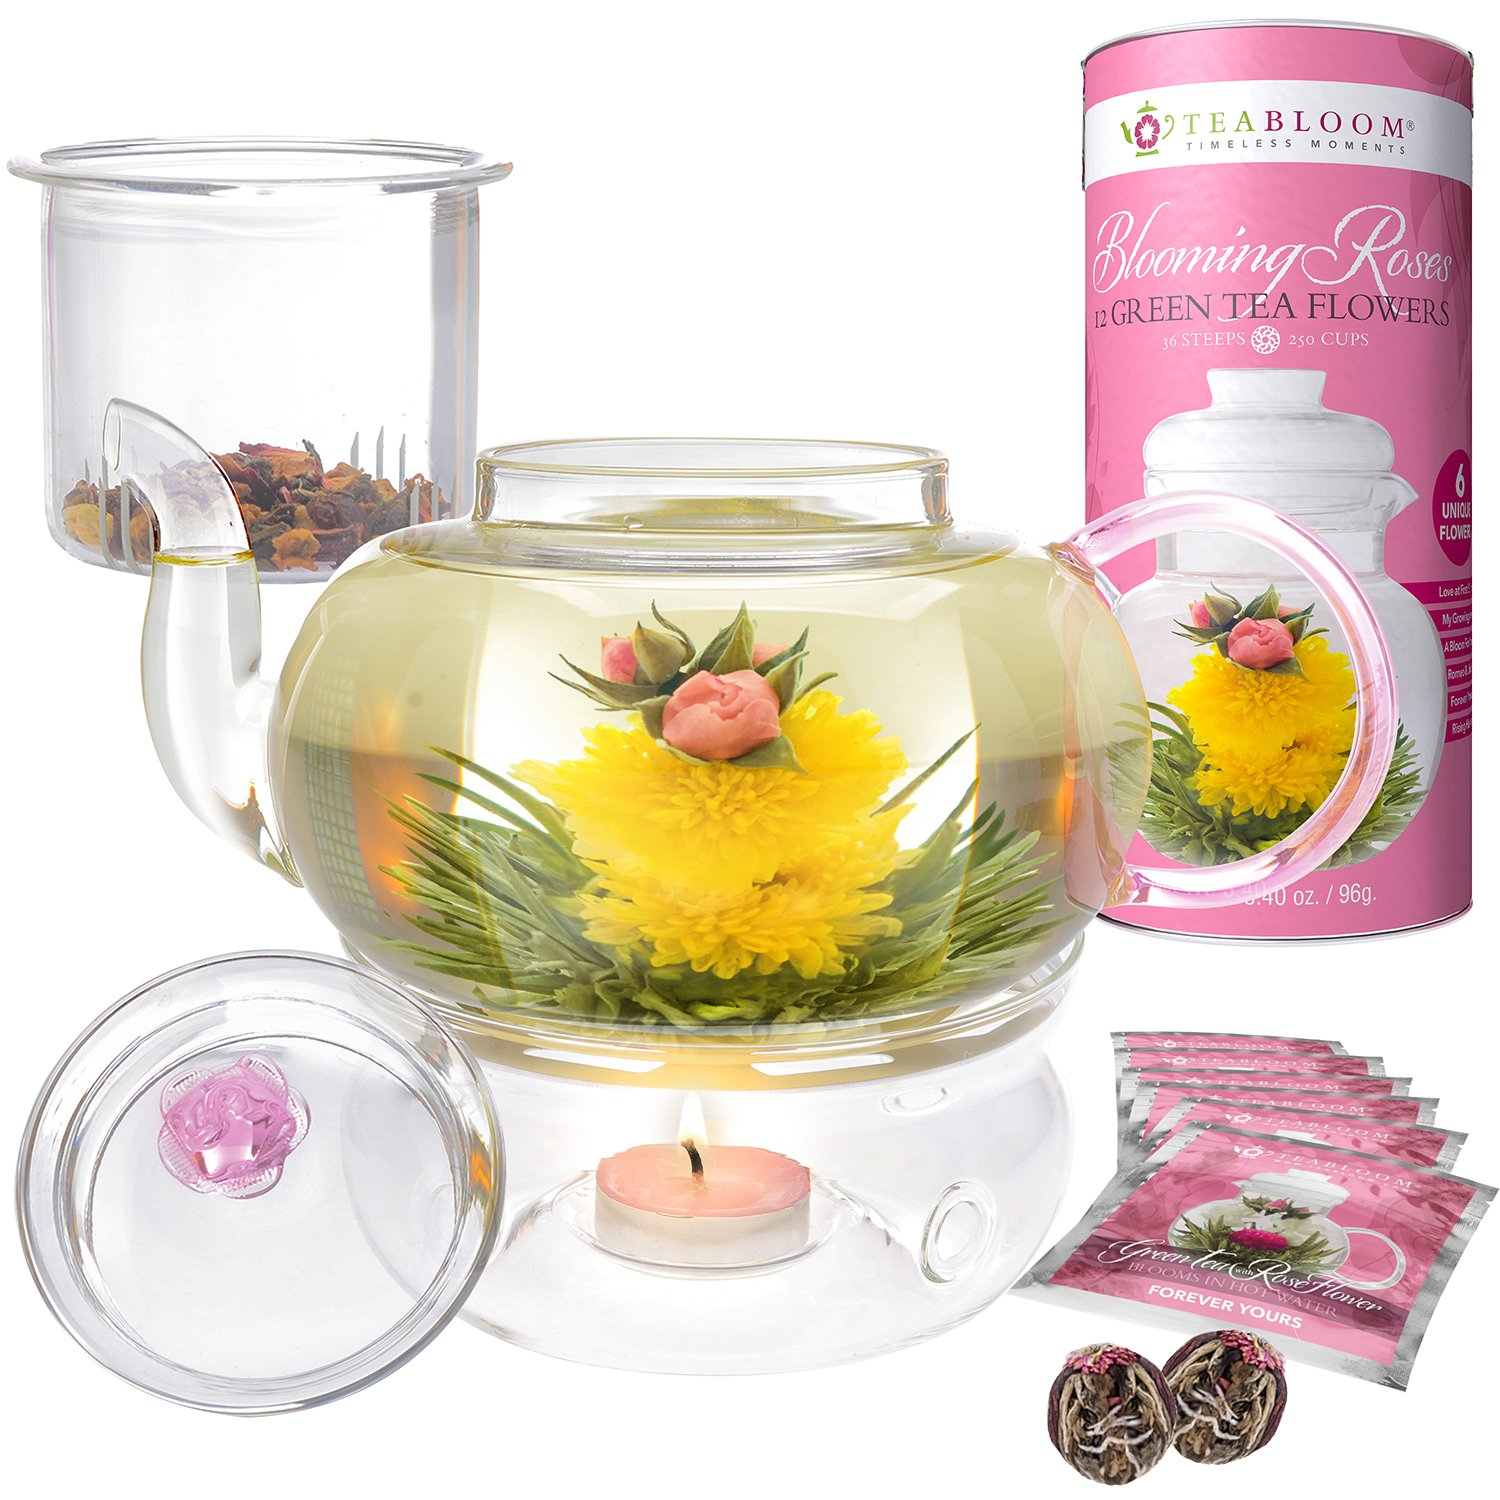 Teabloom Pretty in Pink Rose Tea Gift Set - Includes 34 oz Stovetop Safe Glass Teapot, 12 Rose Flowering Teas, Removable Loose Tea Glass Infuser, Glass Tea Warmer + Tea Light - Dishwasher Safe by Teabloom